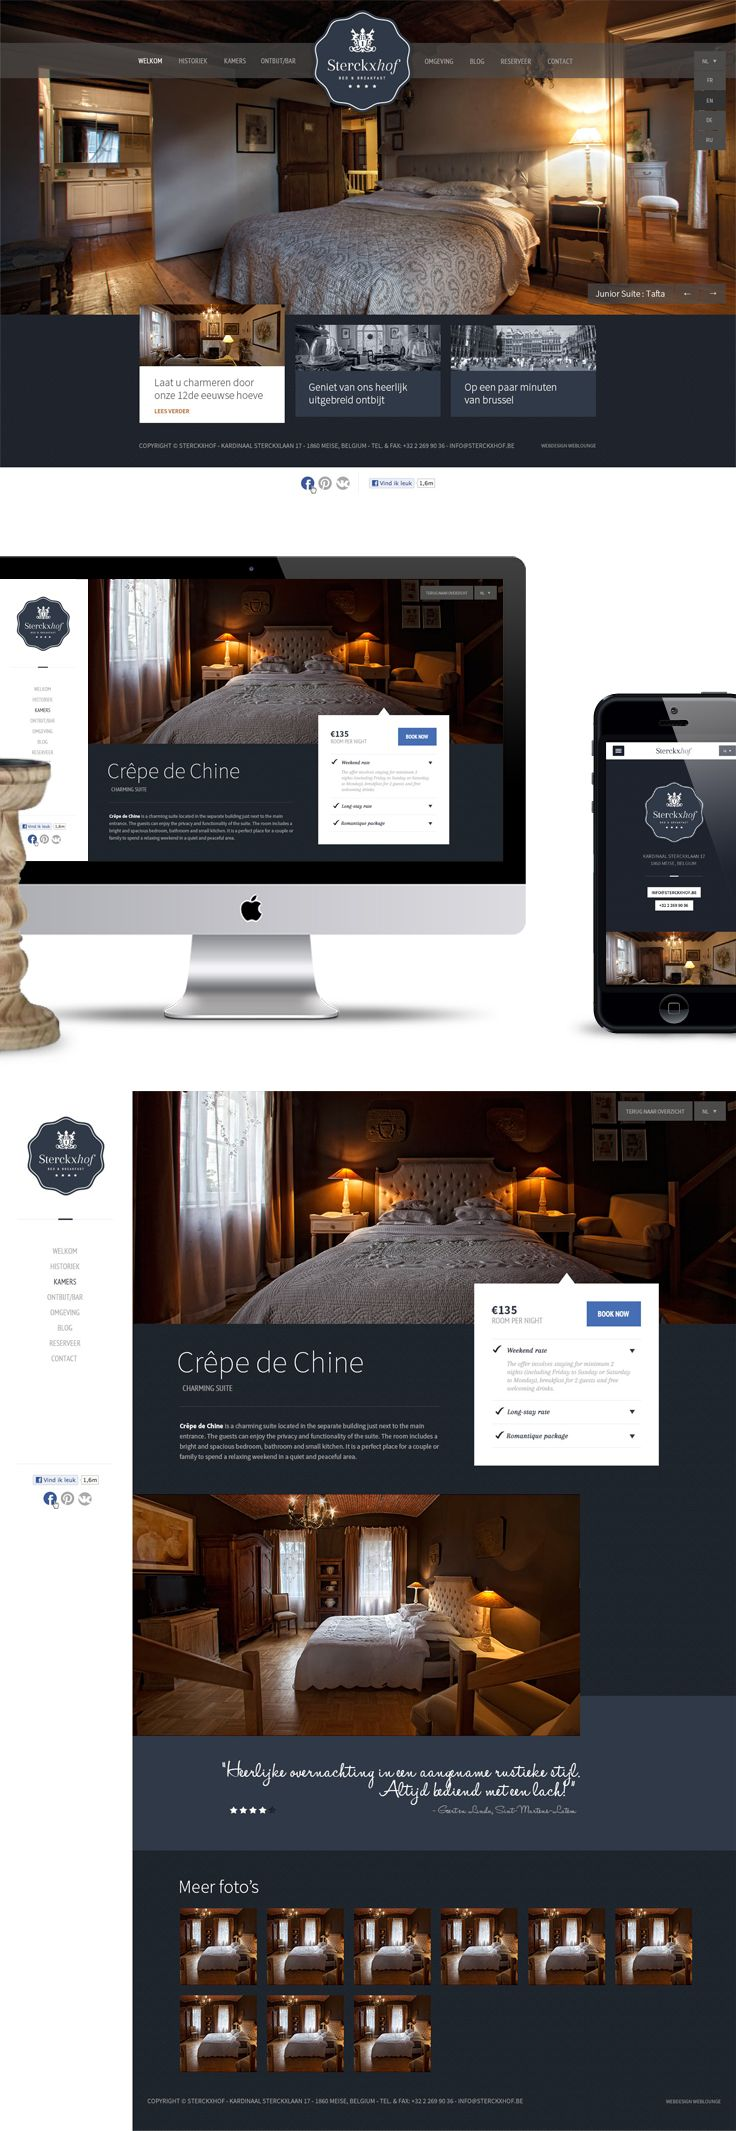 Responsive website for Sterckxhof - Bed & Breakfast - Designed by Weblounge…